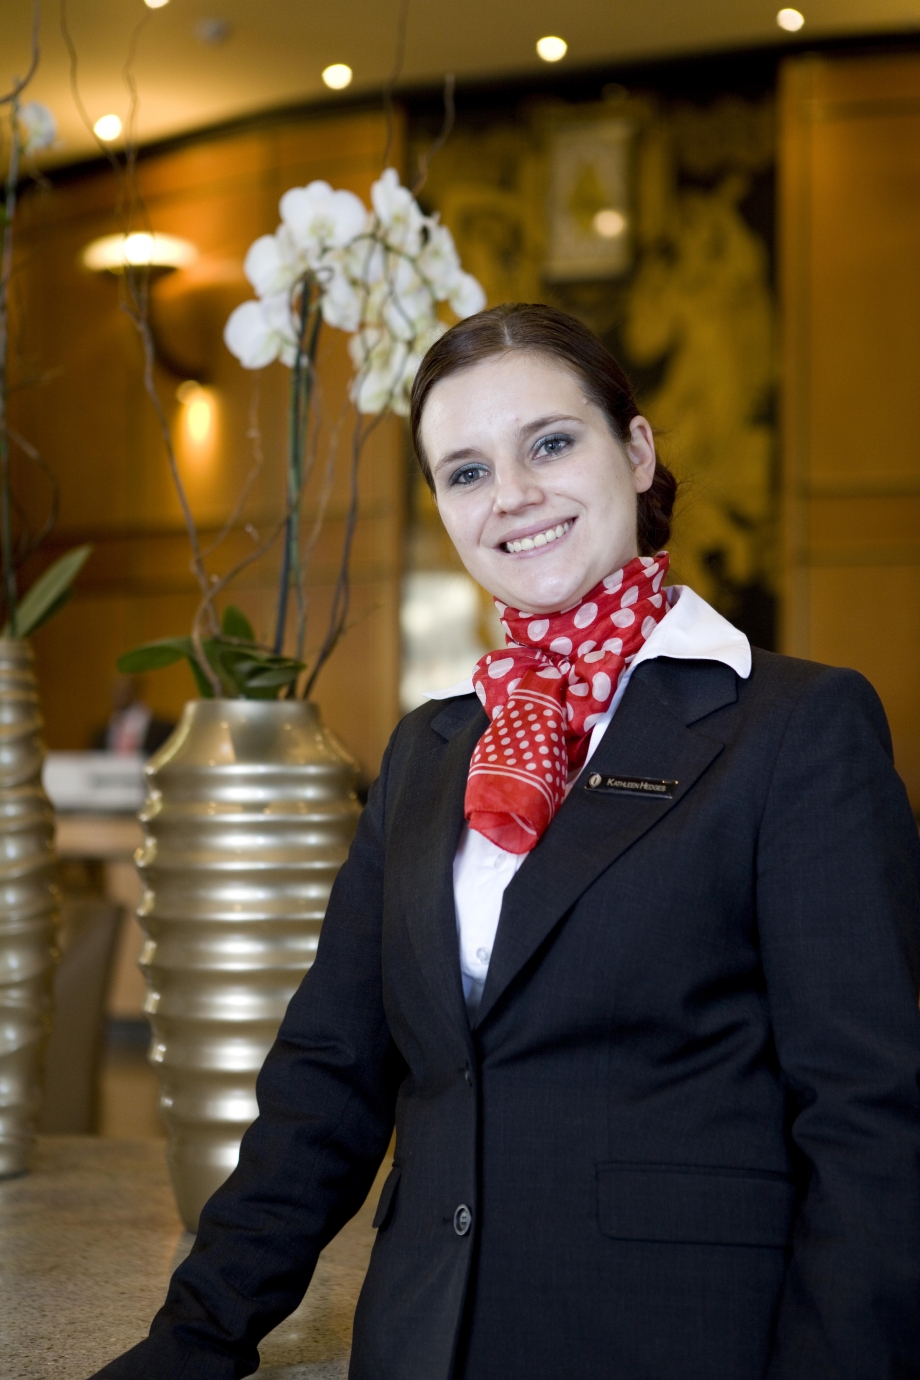 Kathleen Hedges, Head Concierge of InterContinental Johannesburg Sandton Towers - AspirantSG